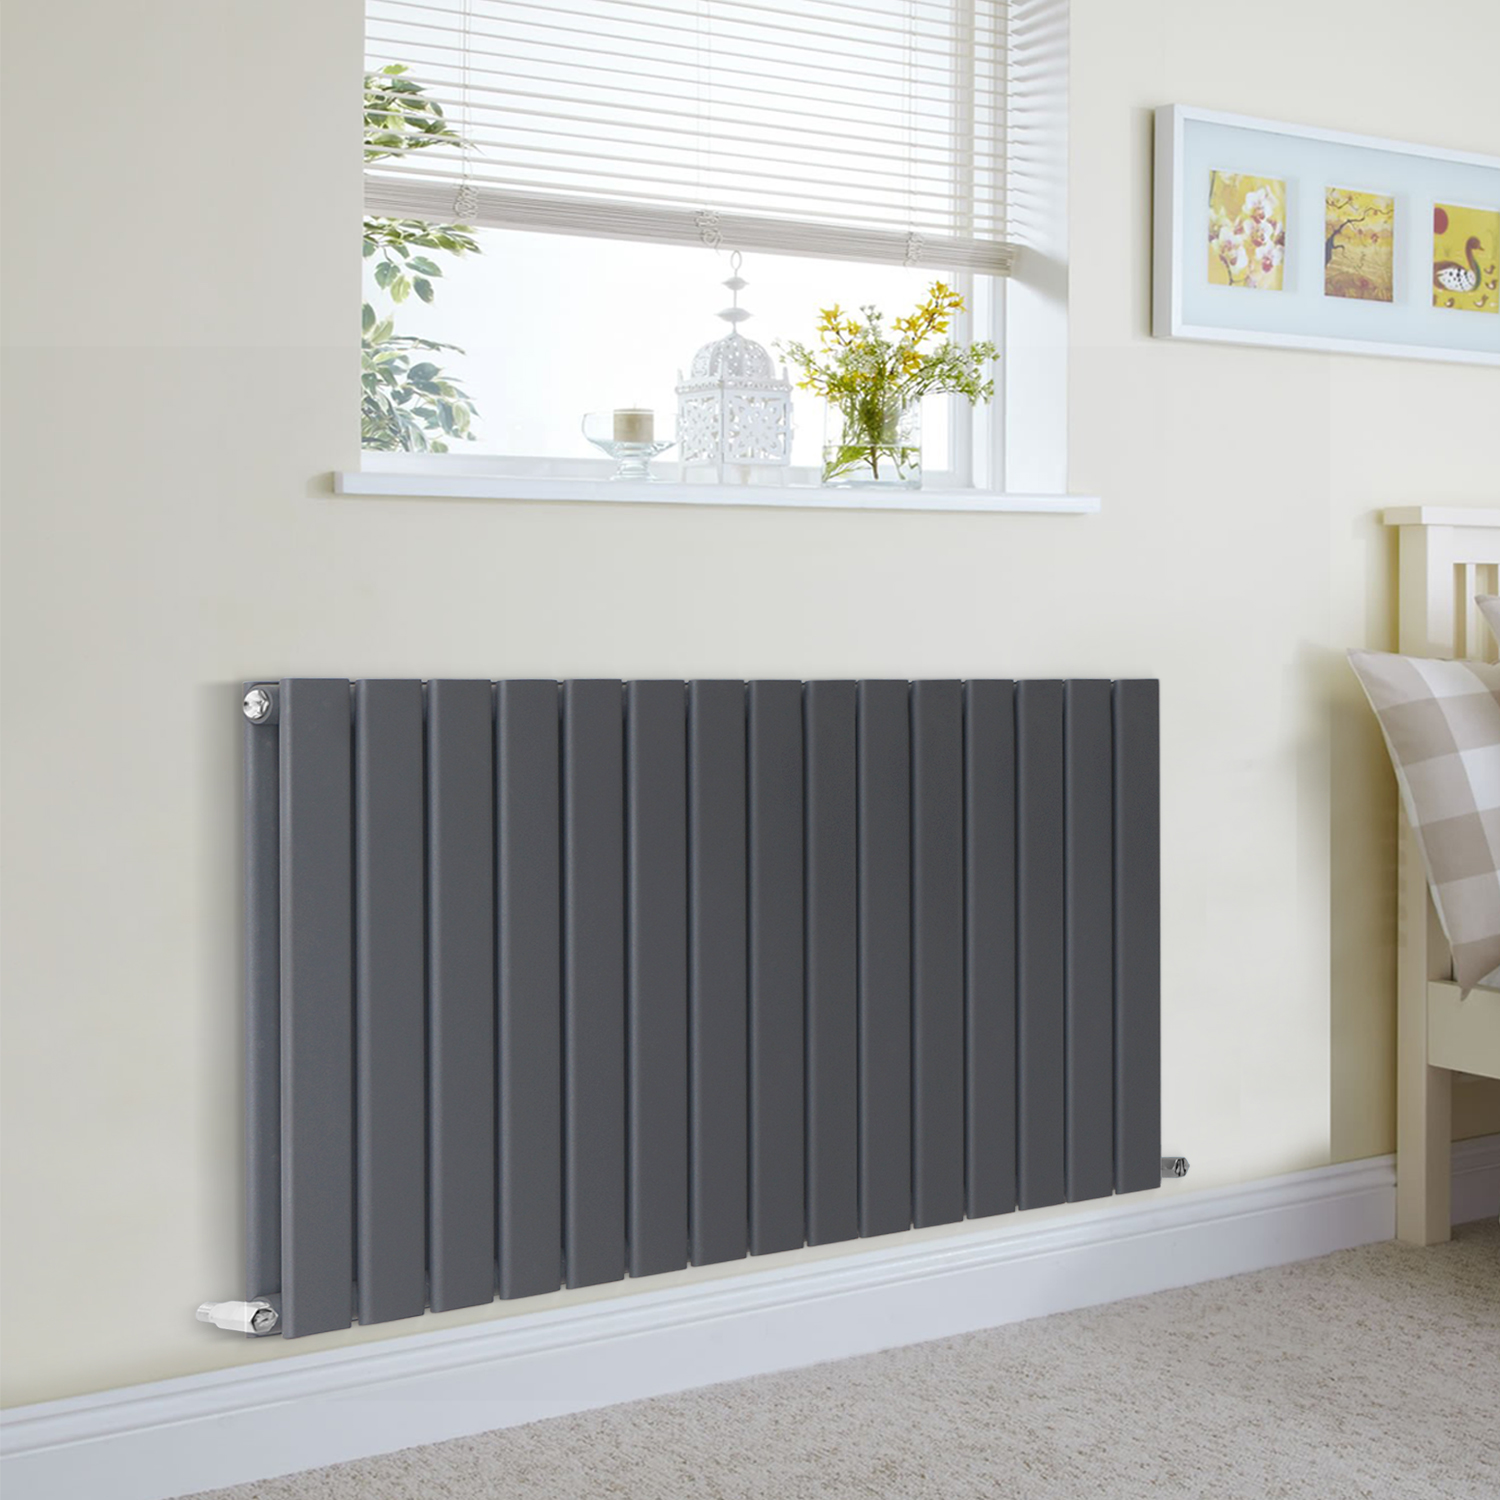 Old fashioned radiator style heaters M: Customer reviews: Comfort Zone Oil